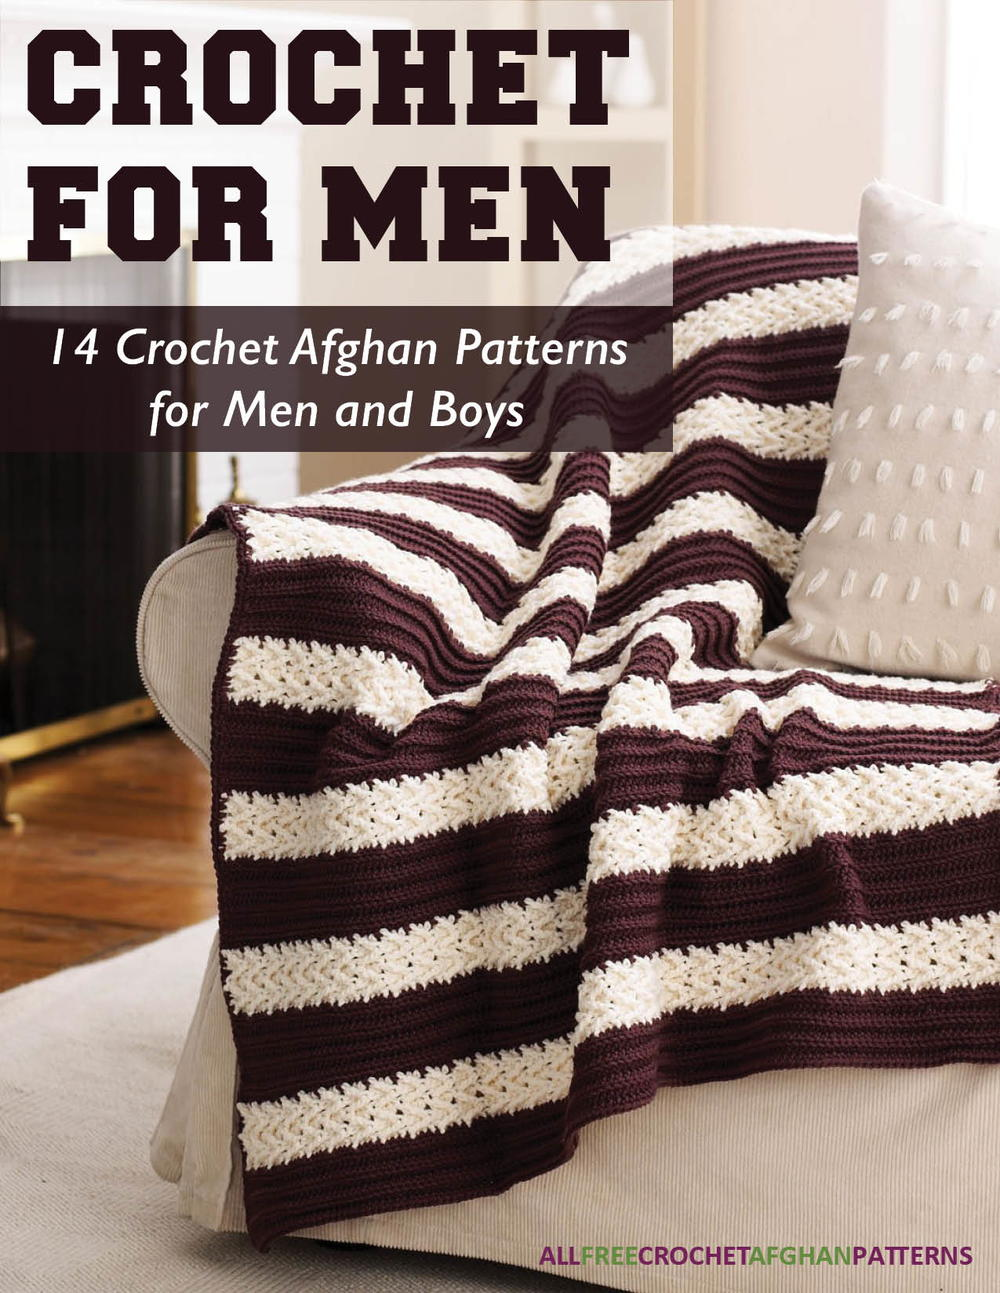 Crochet For Men 14 Crochet Afghan Patterns For Men And